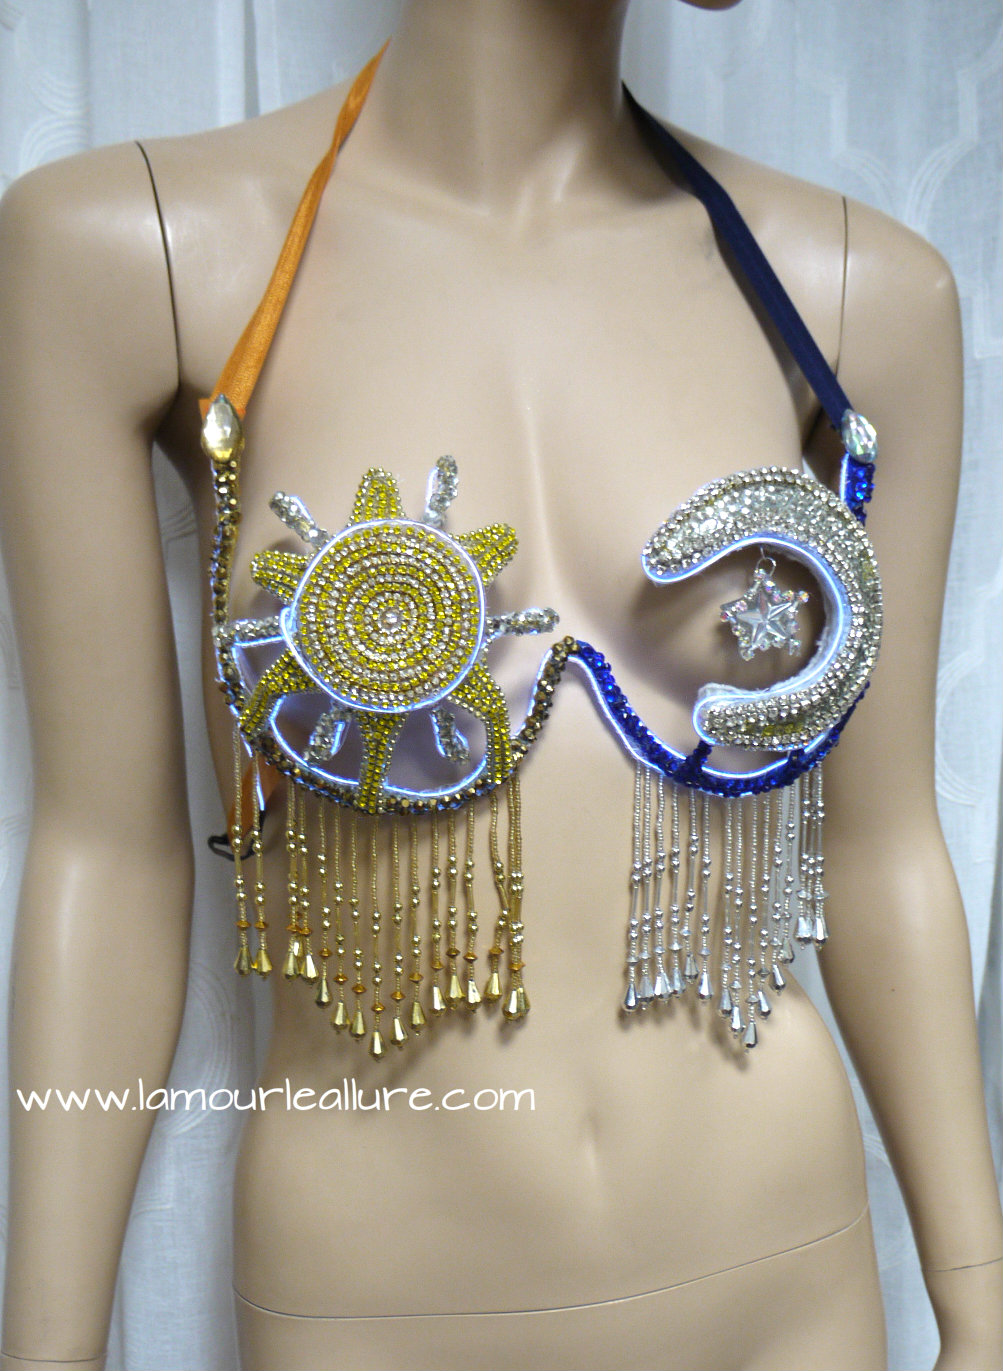 879f0be7f23 LED Sun and Moon Samba Bra Cosplay Dance Costume Rave Bra Rave Wear  Halloween Burlesque Show Girl from L'Amour Le Allure